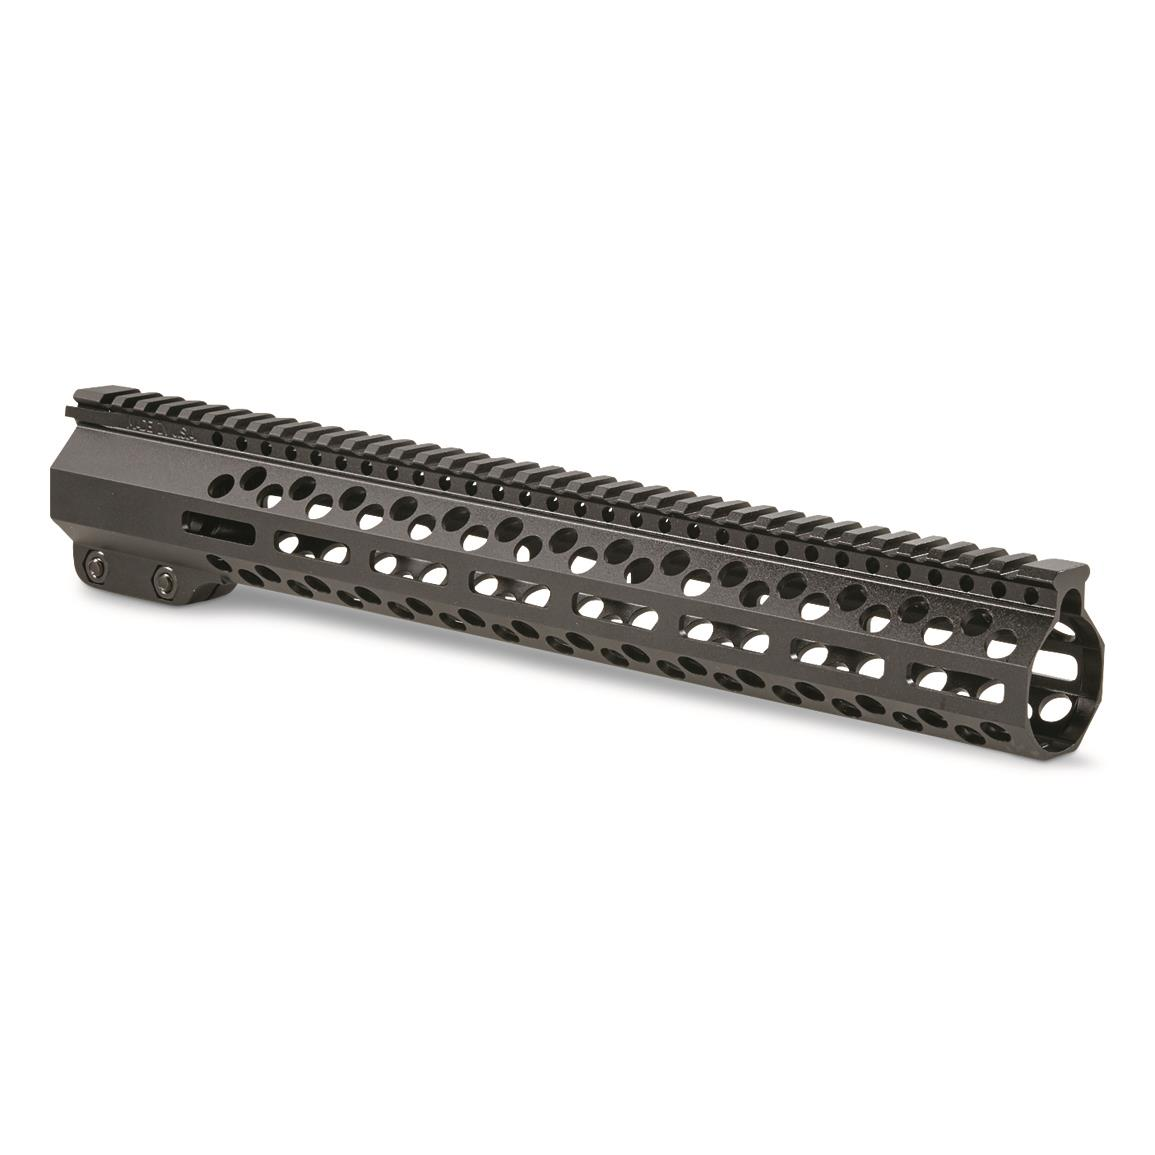 "AR*CHITECT High-profile 15"" AR-10 Handguard, Black"